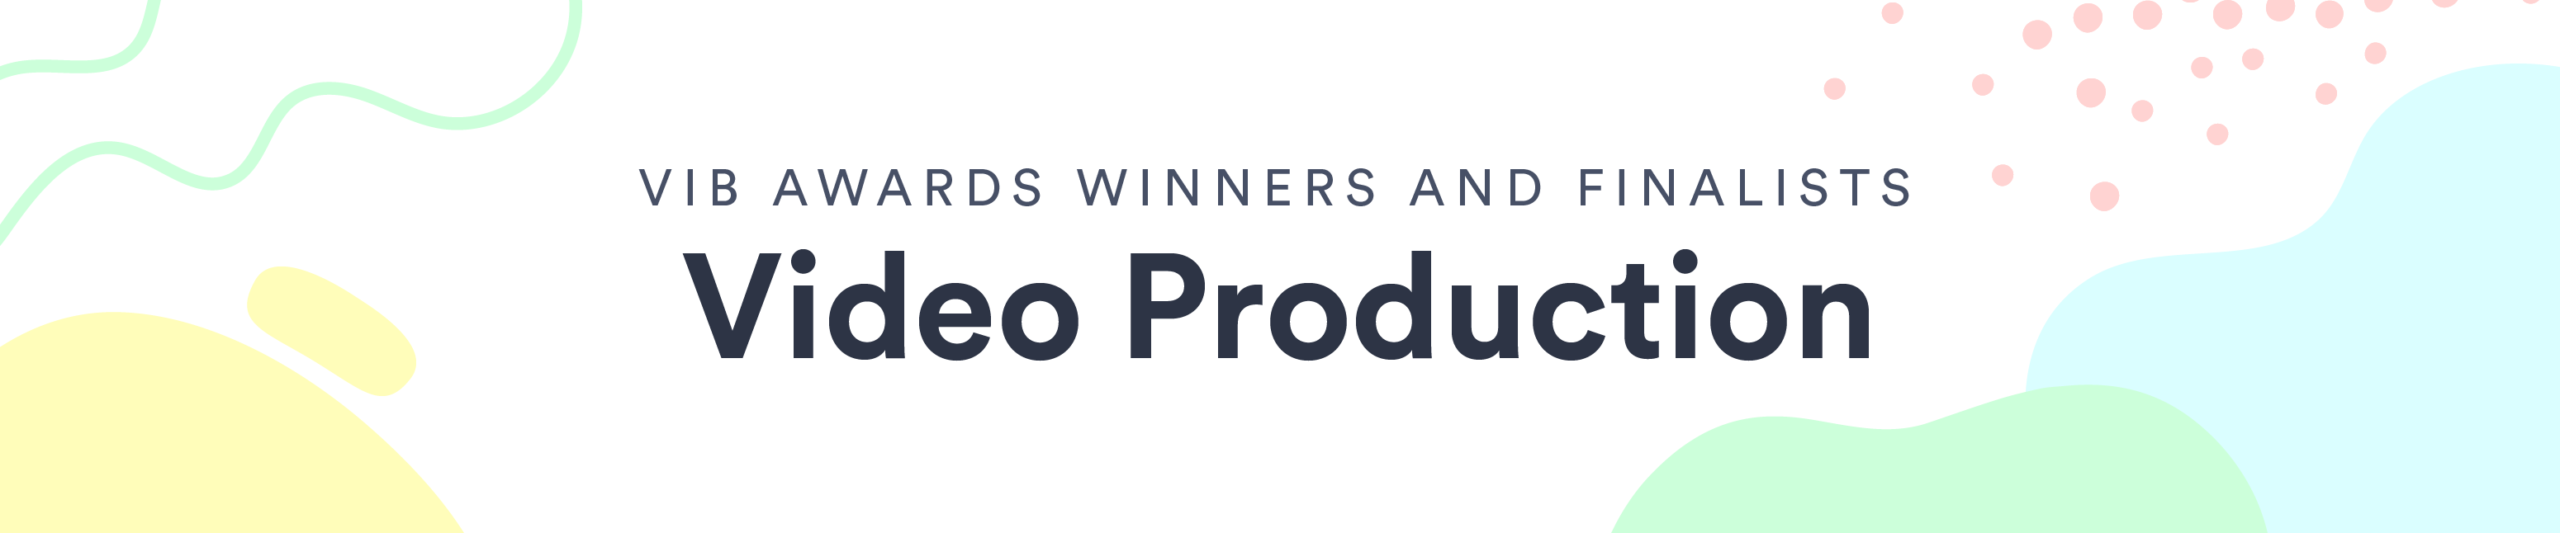 Video in Business Awards: Video Production Winners and Finalists